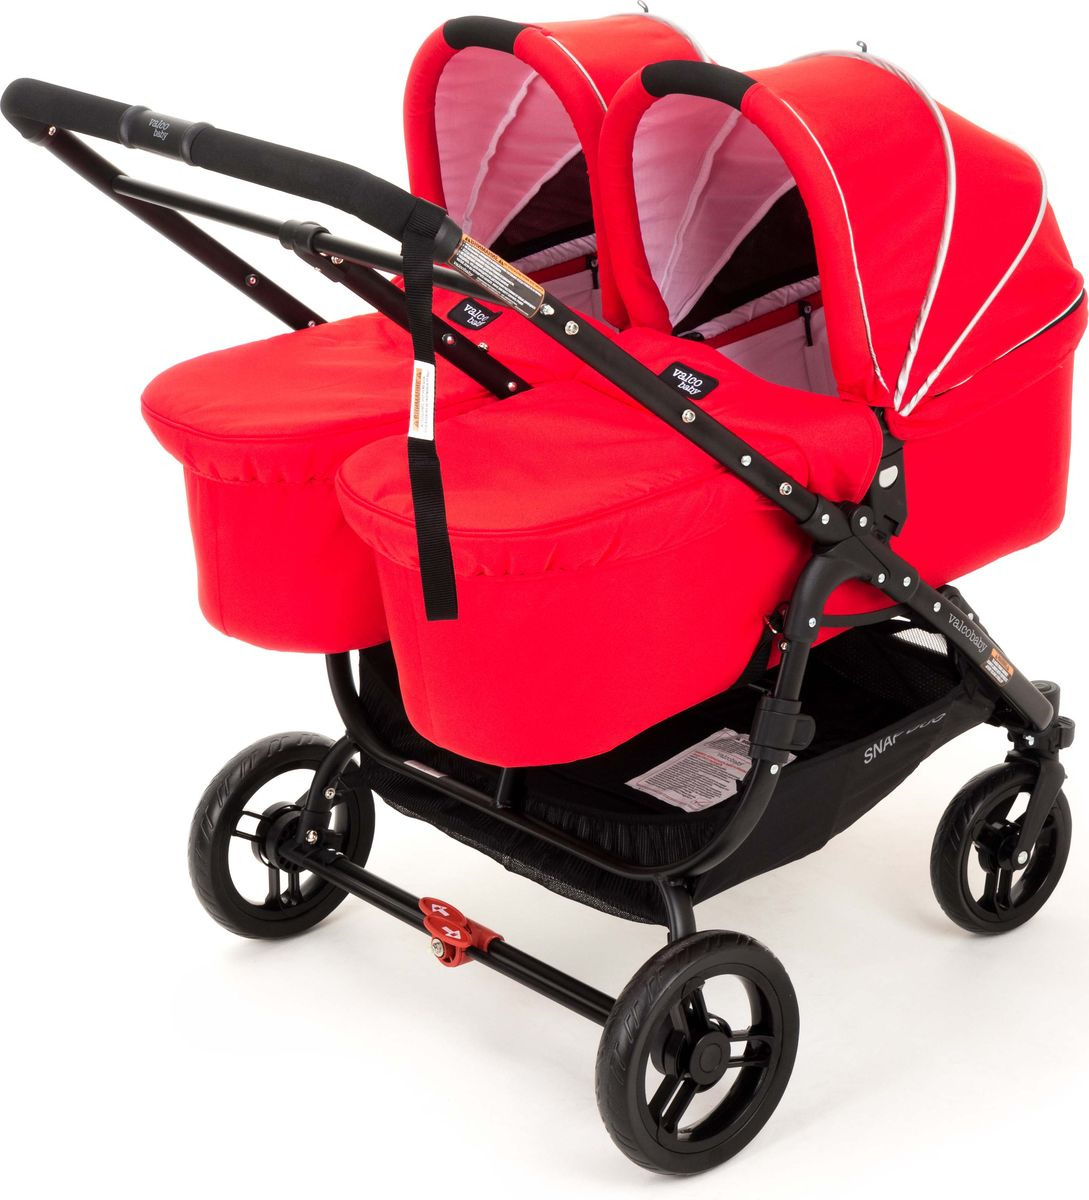 цены на Люлька Valco Baby External Bassinet для Snap Duo Fire red  в интернет-магазинах